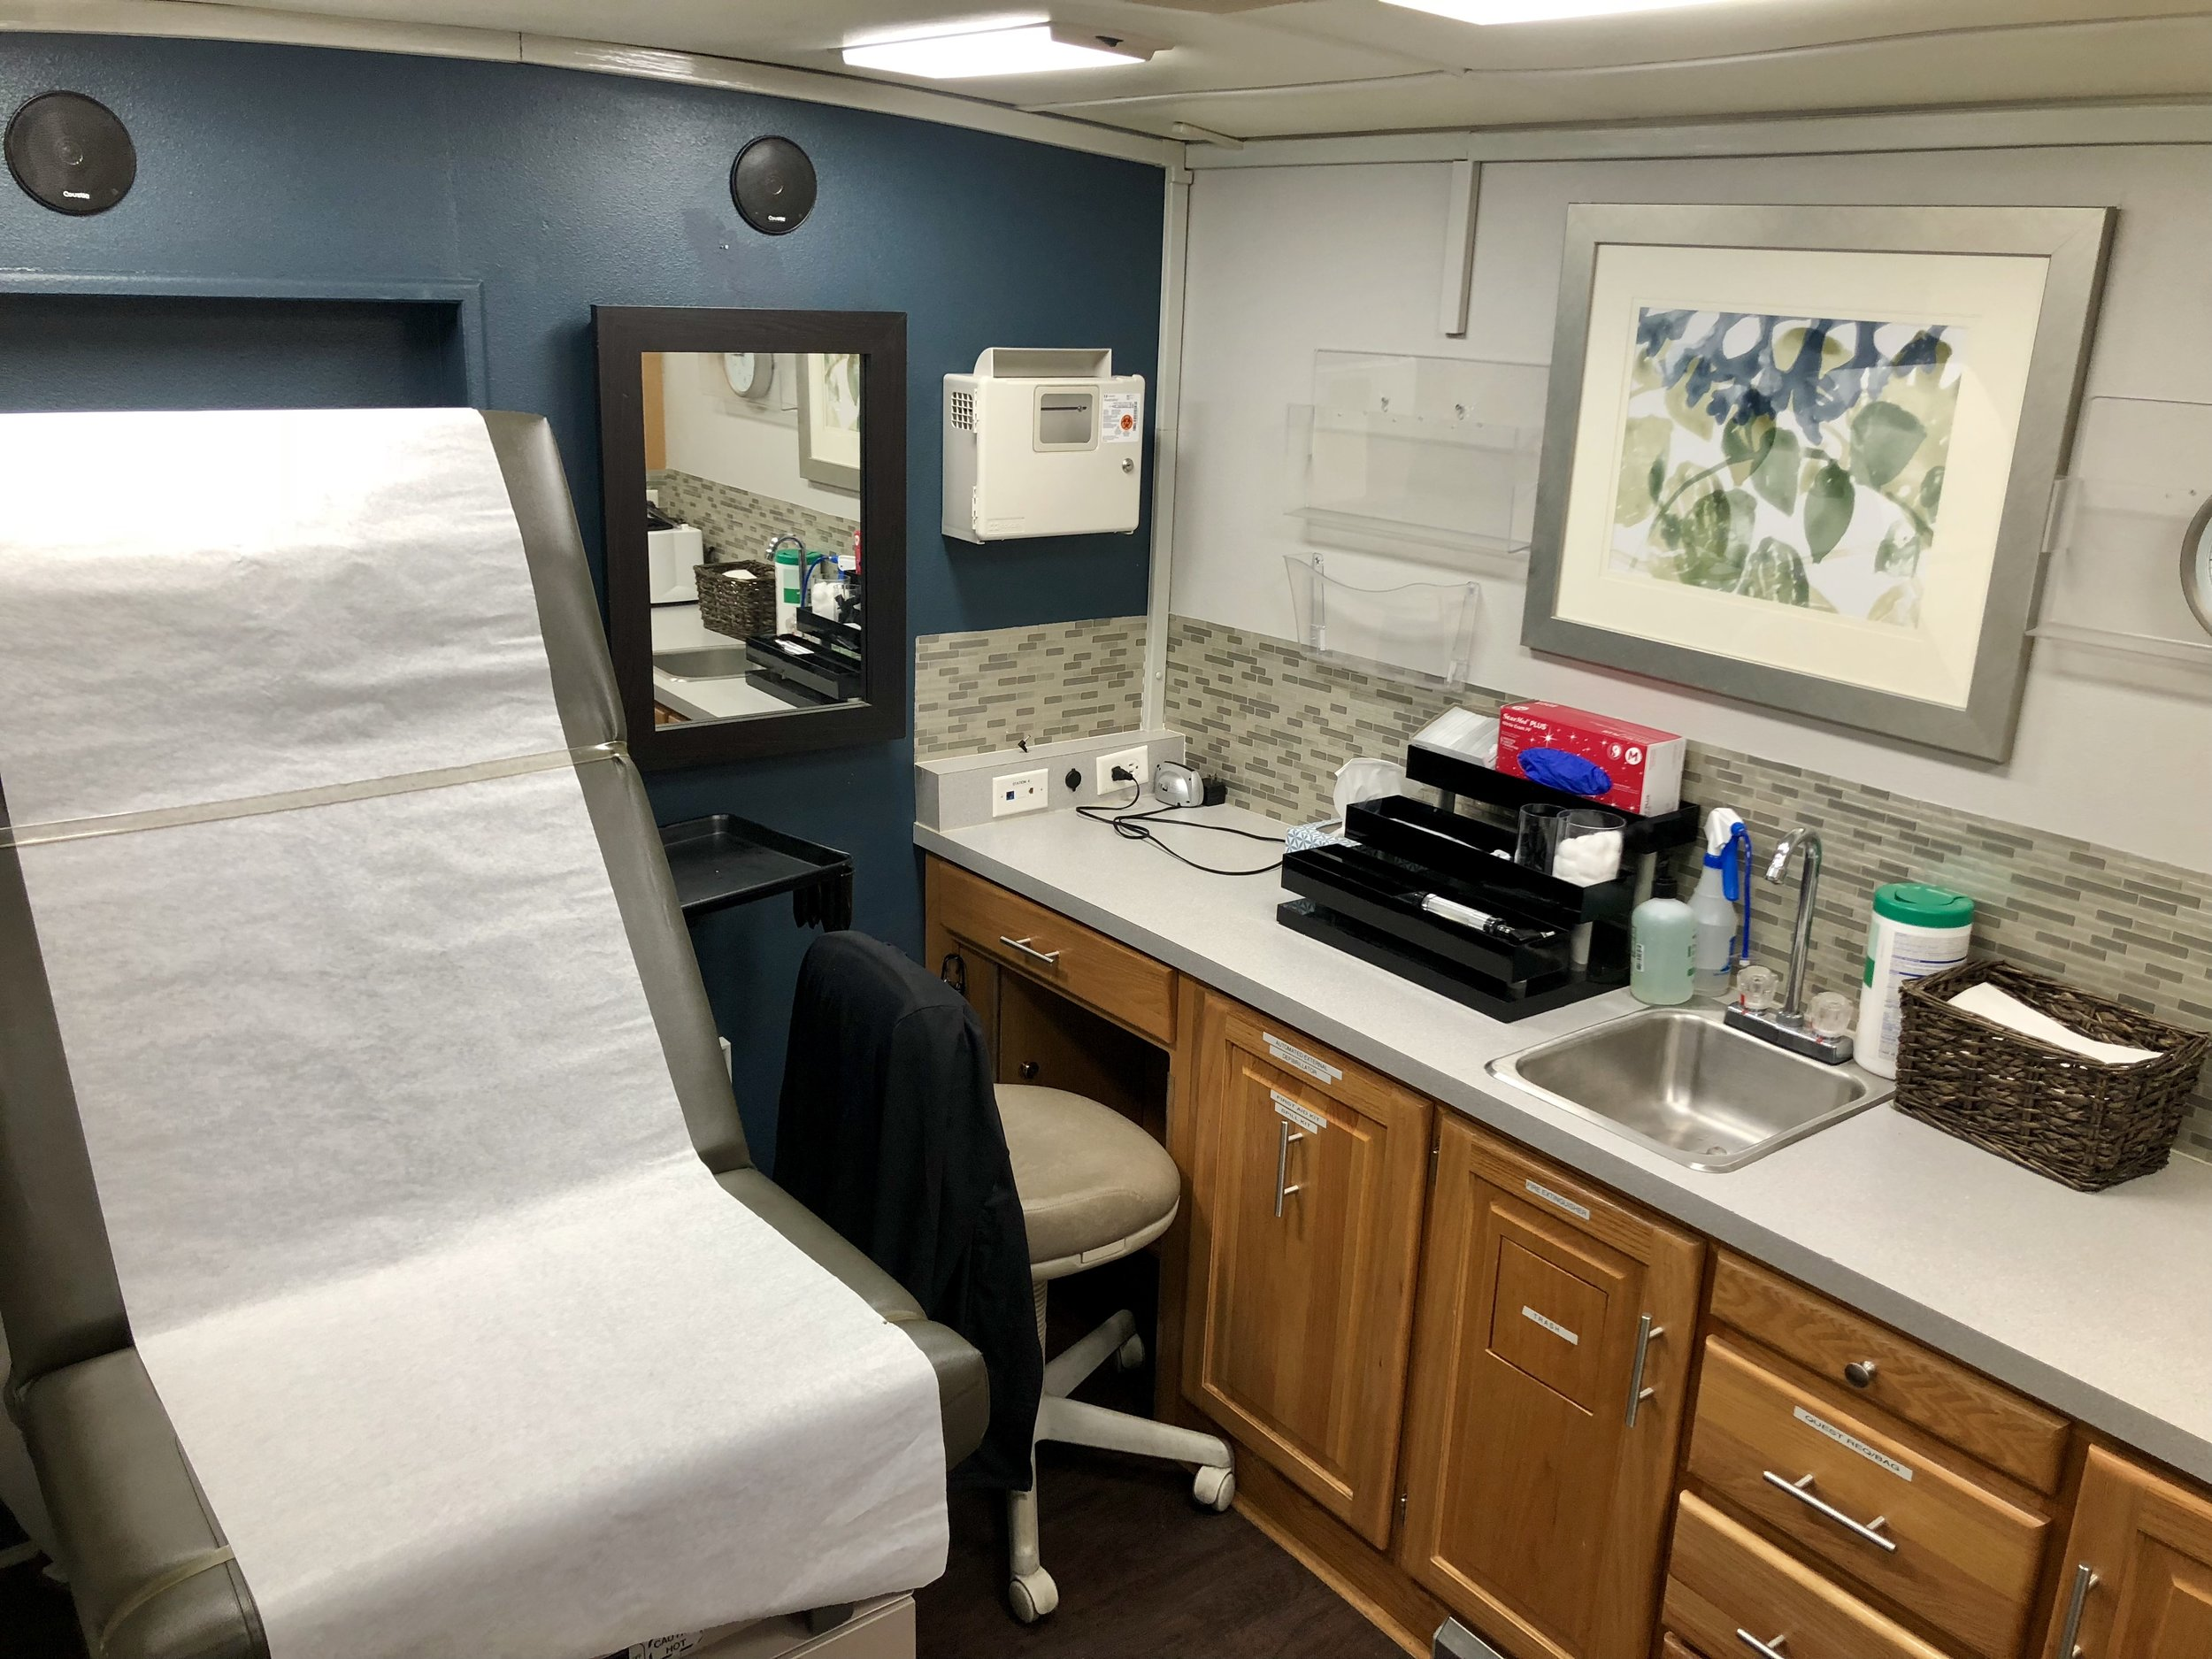 Exam room (side view)